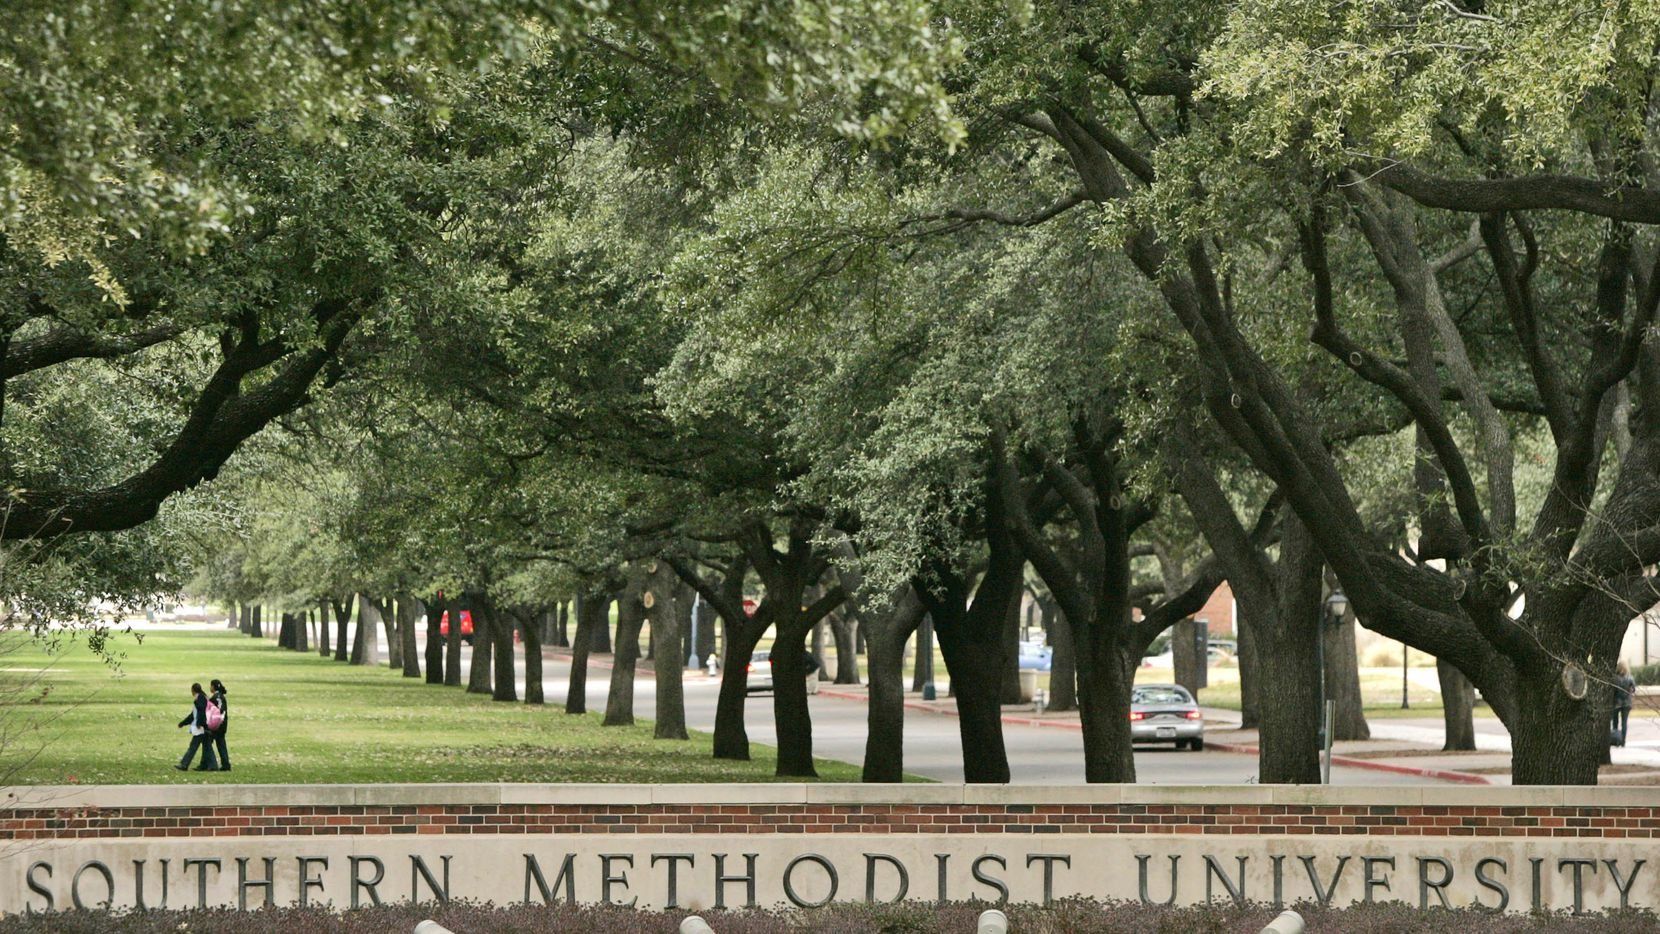 Southern Methodist University last month amended its articles of incorporation to state that the school is not controlled by the United Methodist Church's South Central Jurisdictional Conference but by SMU's board of trustees. In its lawsuit, the SCJC contends that the university had no right to amend the articles without conference approval.